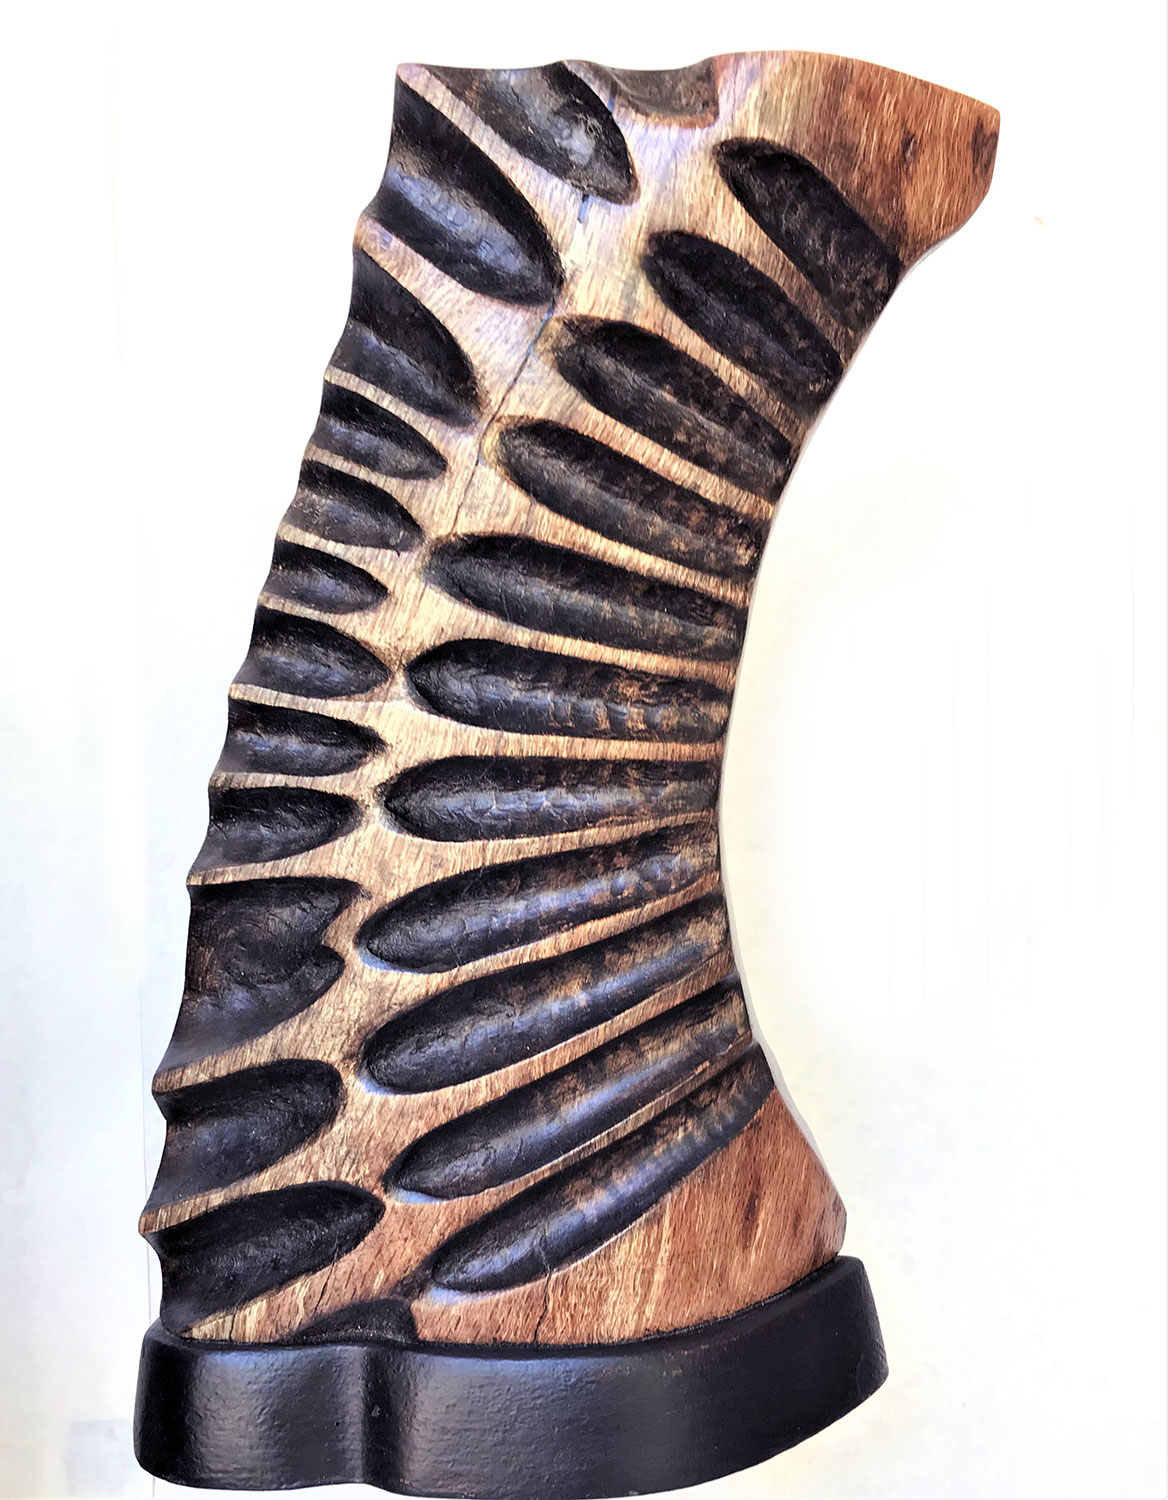 Wood Sculpture by Mike Laflin